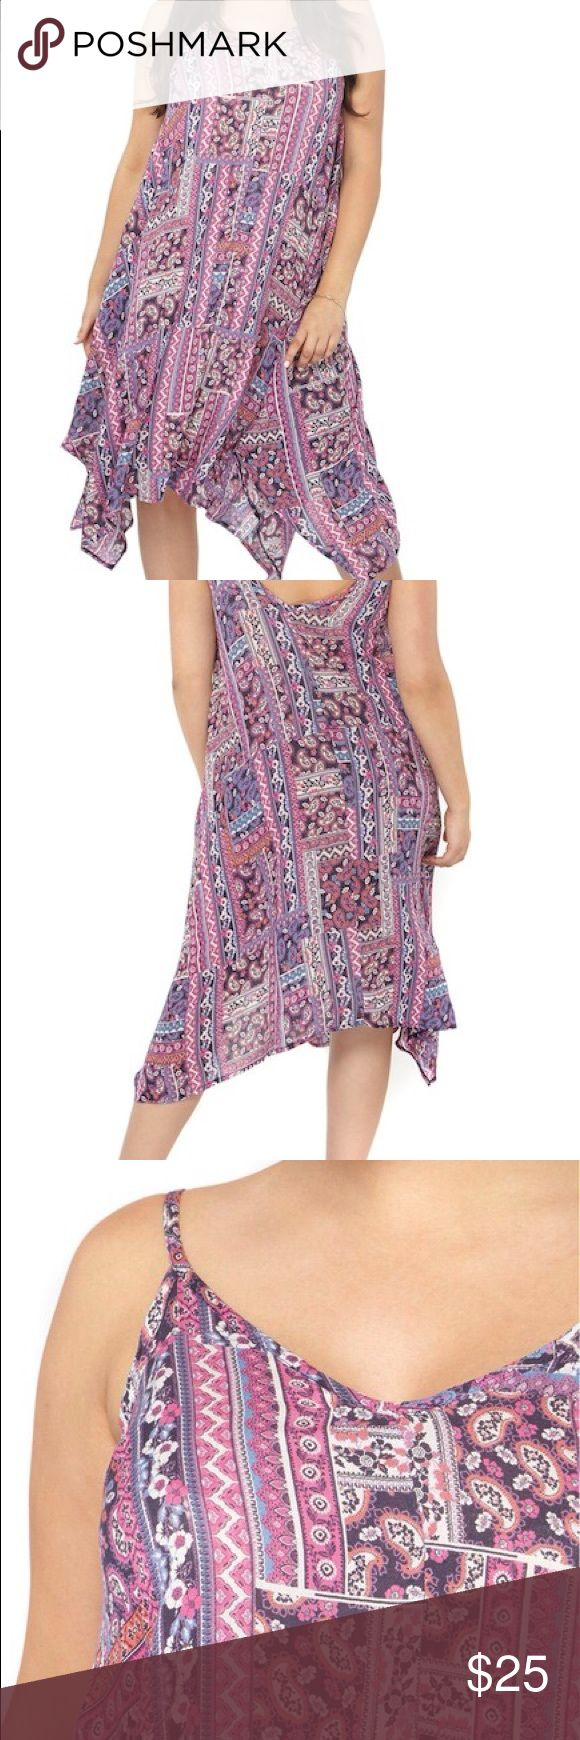 Handkerchief Hem Print A-Line Dress (Plus) Cute patch work paisley print in a brilliant array of colors adds to the boho vibe of a light and easy slip dress with a fluttering handkerchief hem. Dress slips on over the head, sleeveless, v-neck,fixed spaghetti straps 100% viscose. Evans Dresses Midi